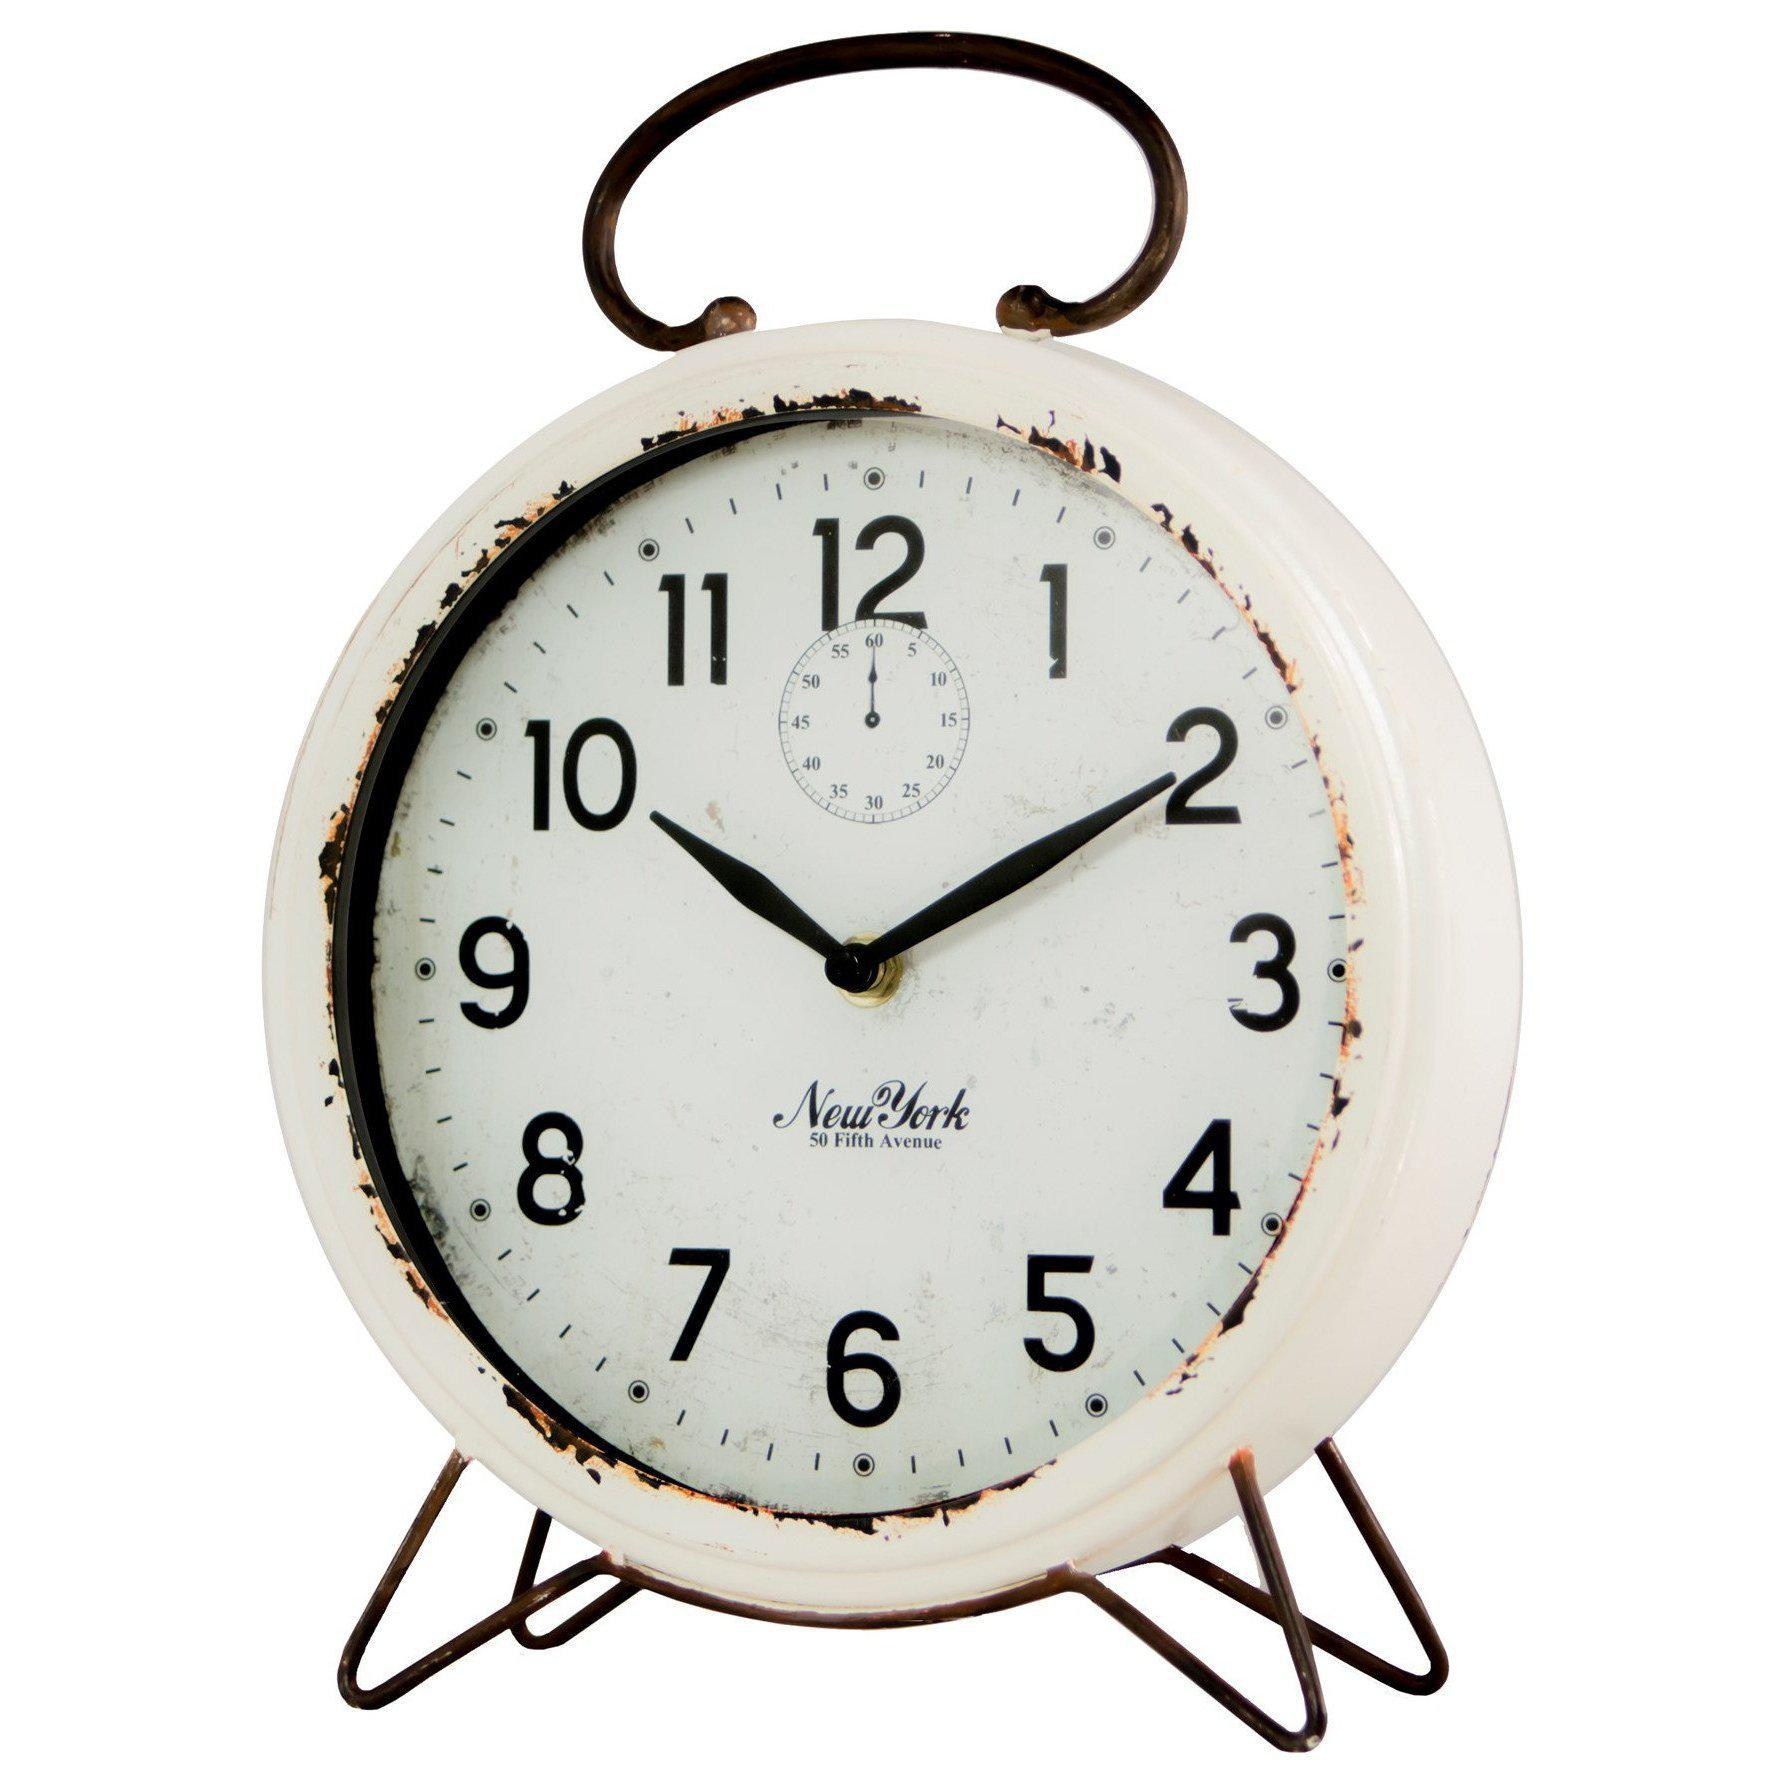 Distressed White Metal Table Clock